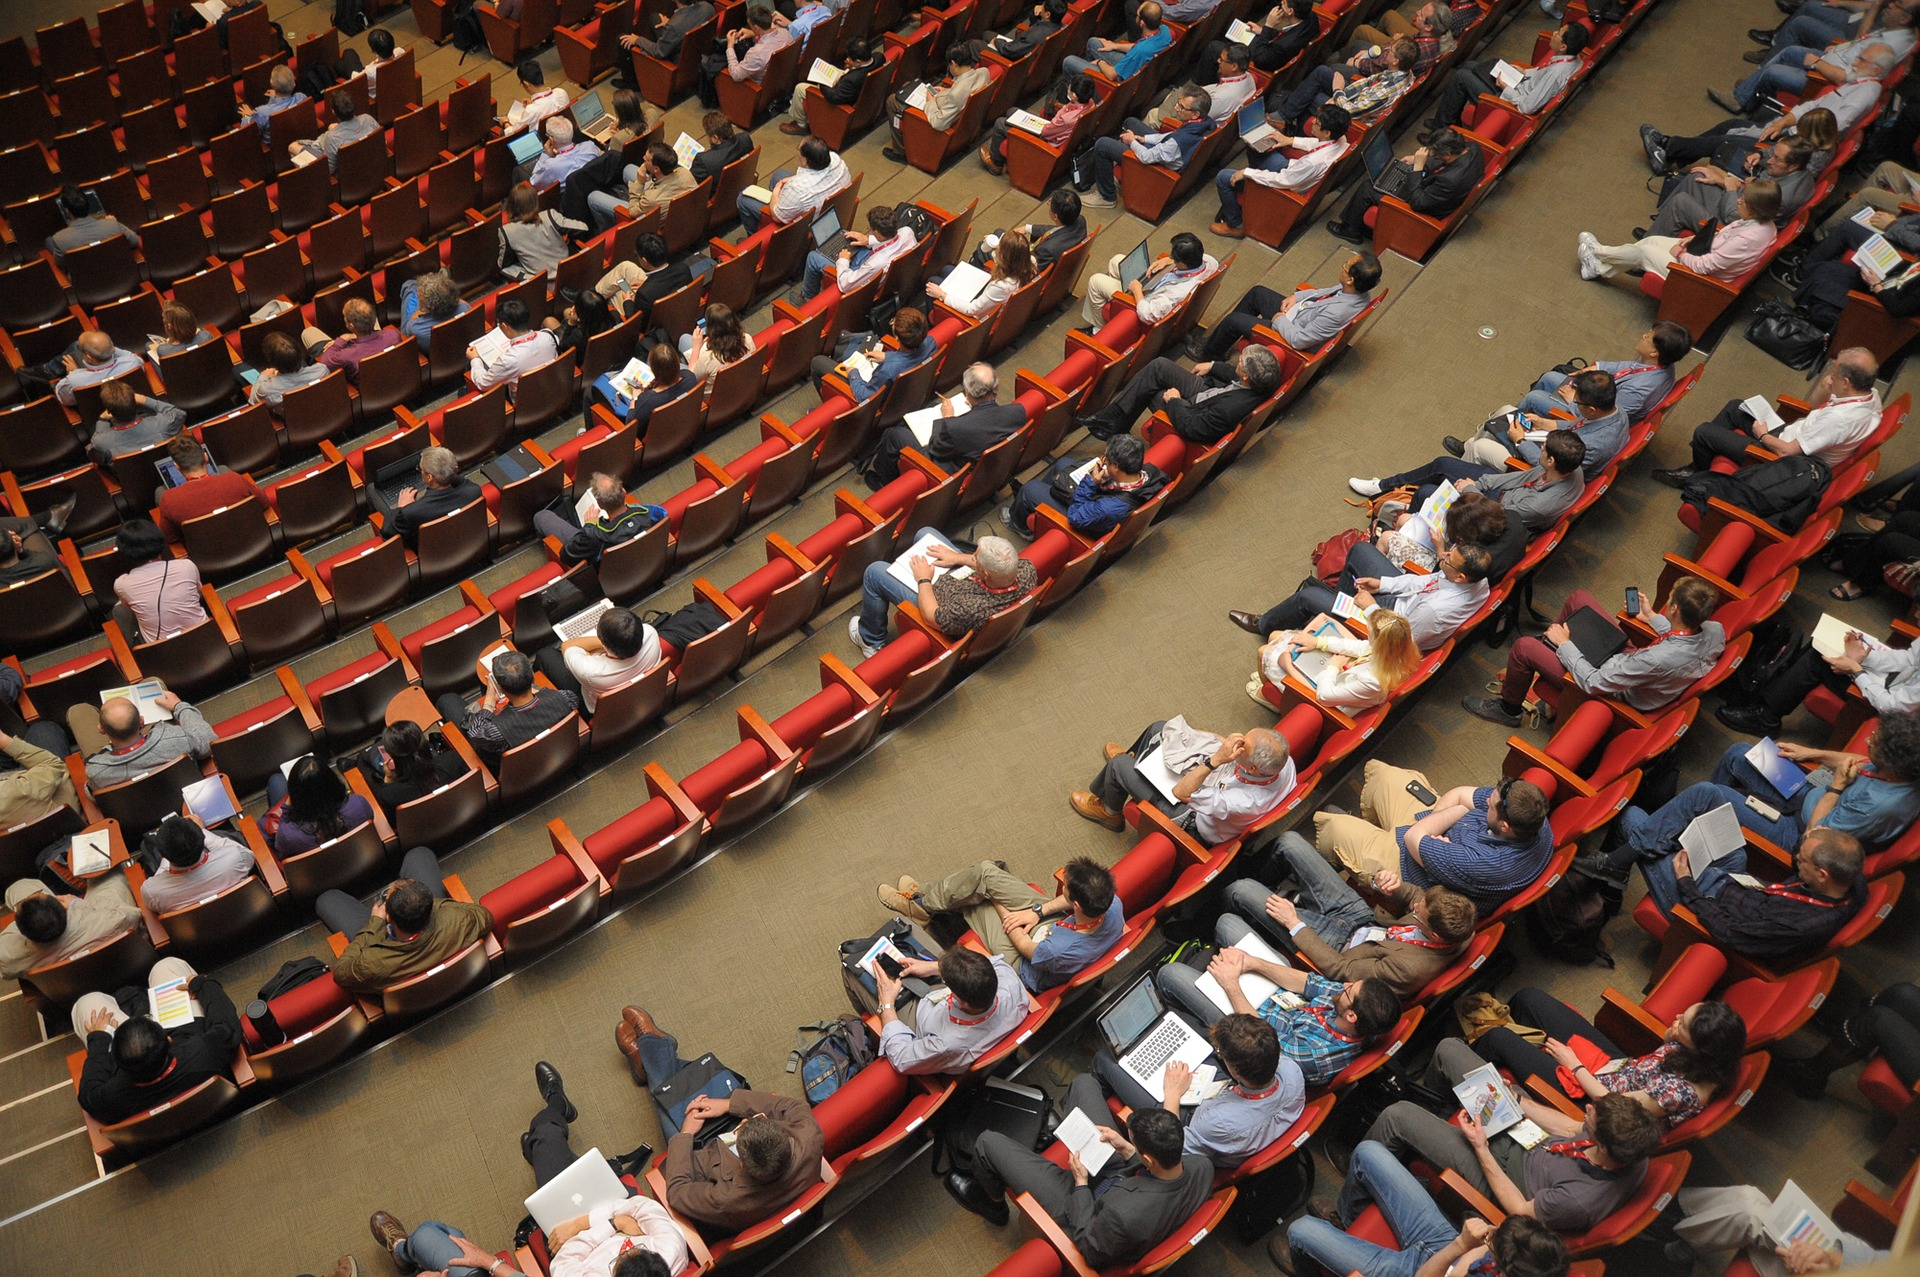 An overhead image of people sat in red chairs